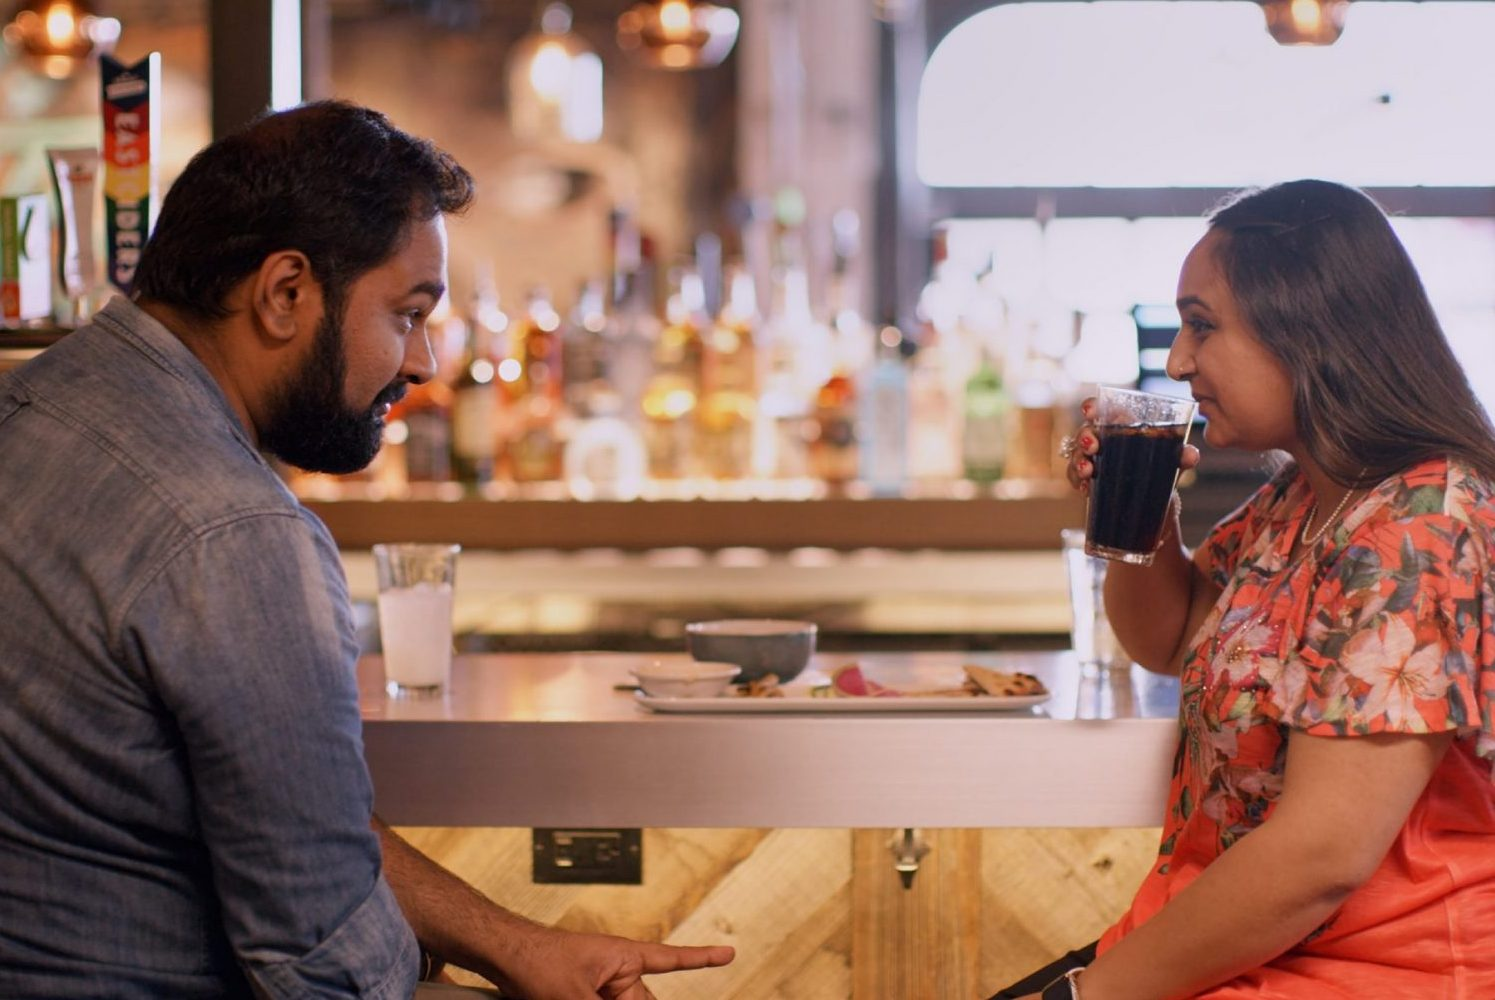 A screen capture of Indian Matchmaking, depicting two individuals on a date